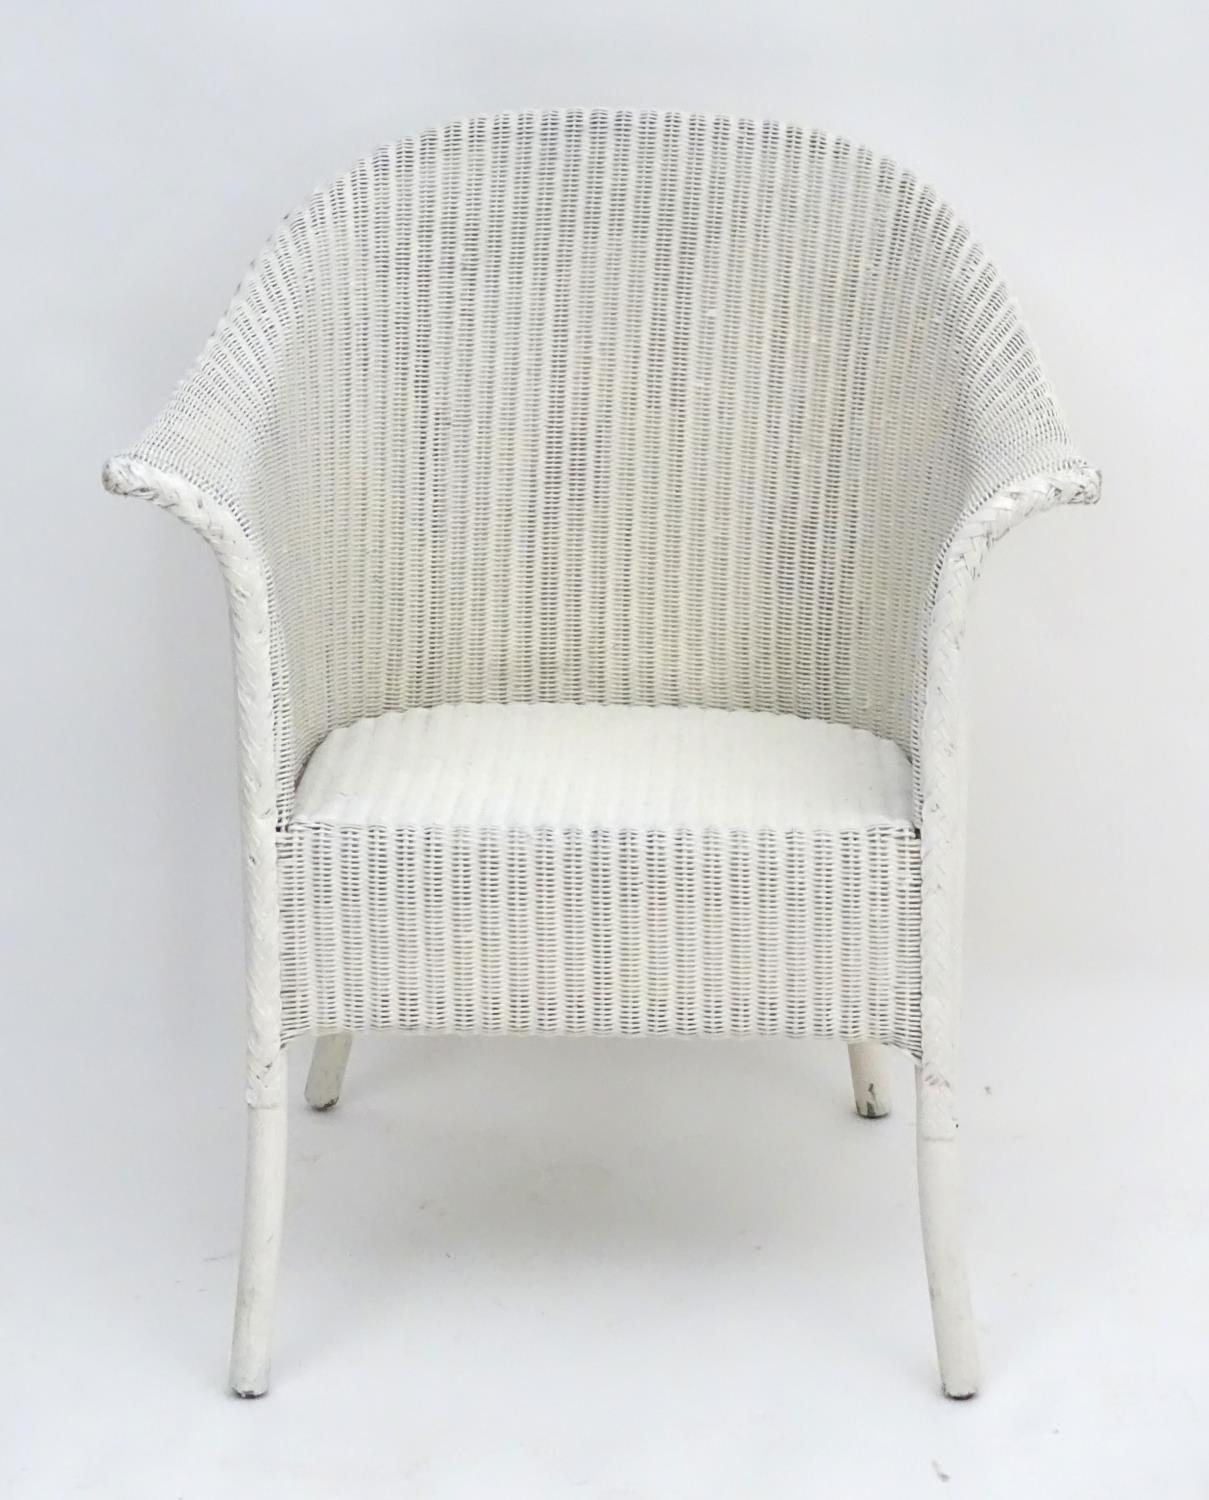 An early 20thC LLoyd loom armchair with a white painted bentwood frame. Bearing label to underneath. - Image 3 of 6